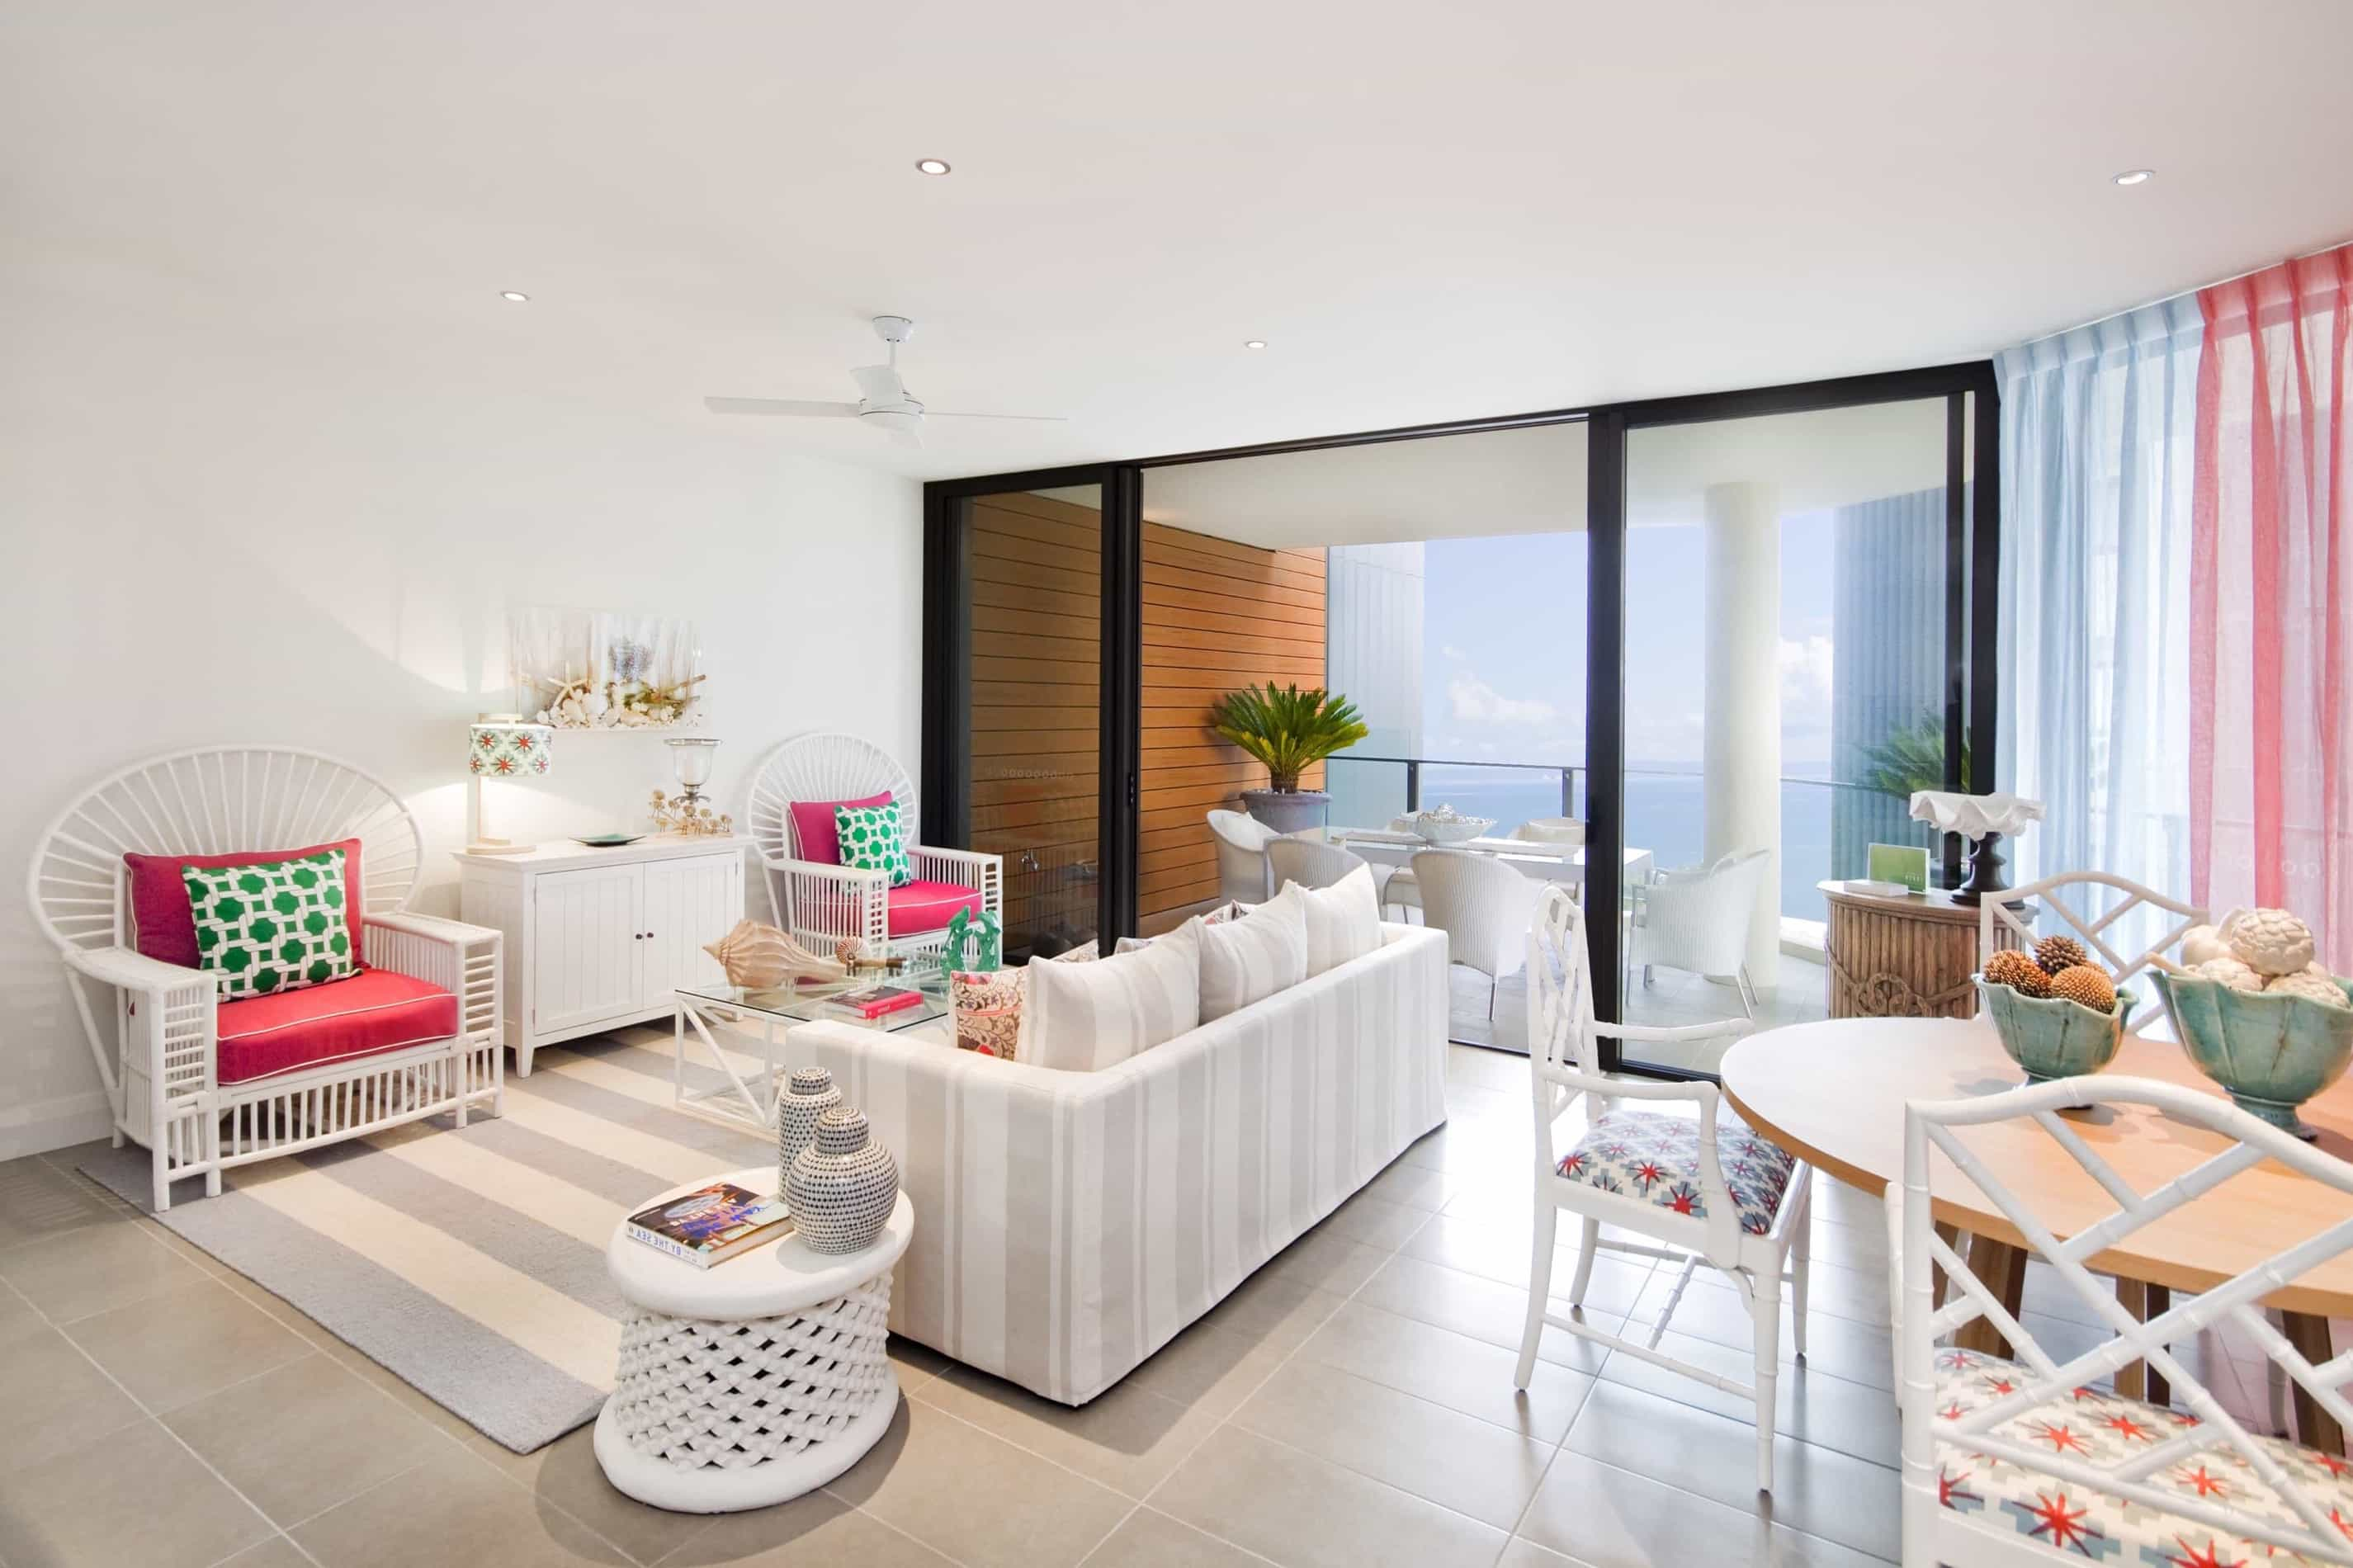 Featured Image of White And Pink Coastal Living Room With Black Framed Sliding Glass Doors